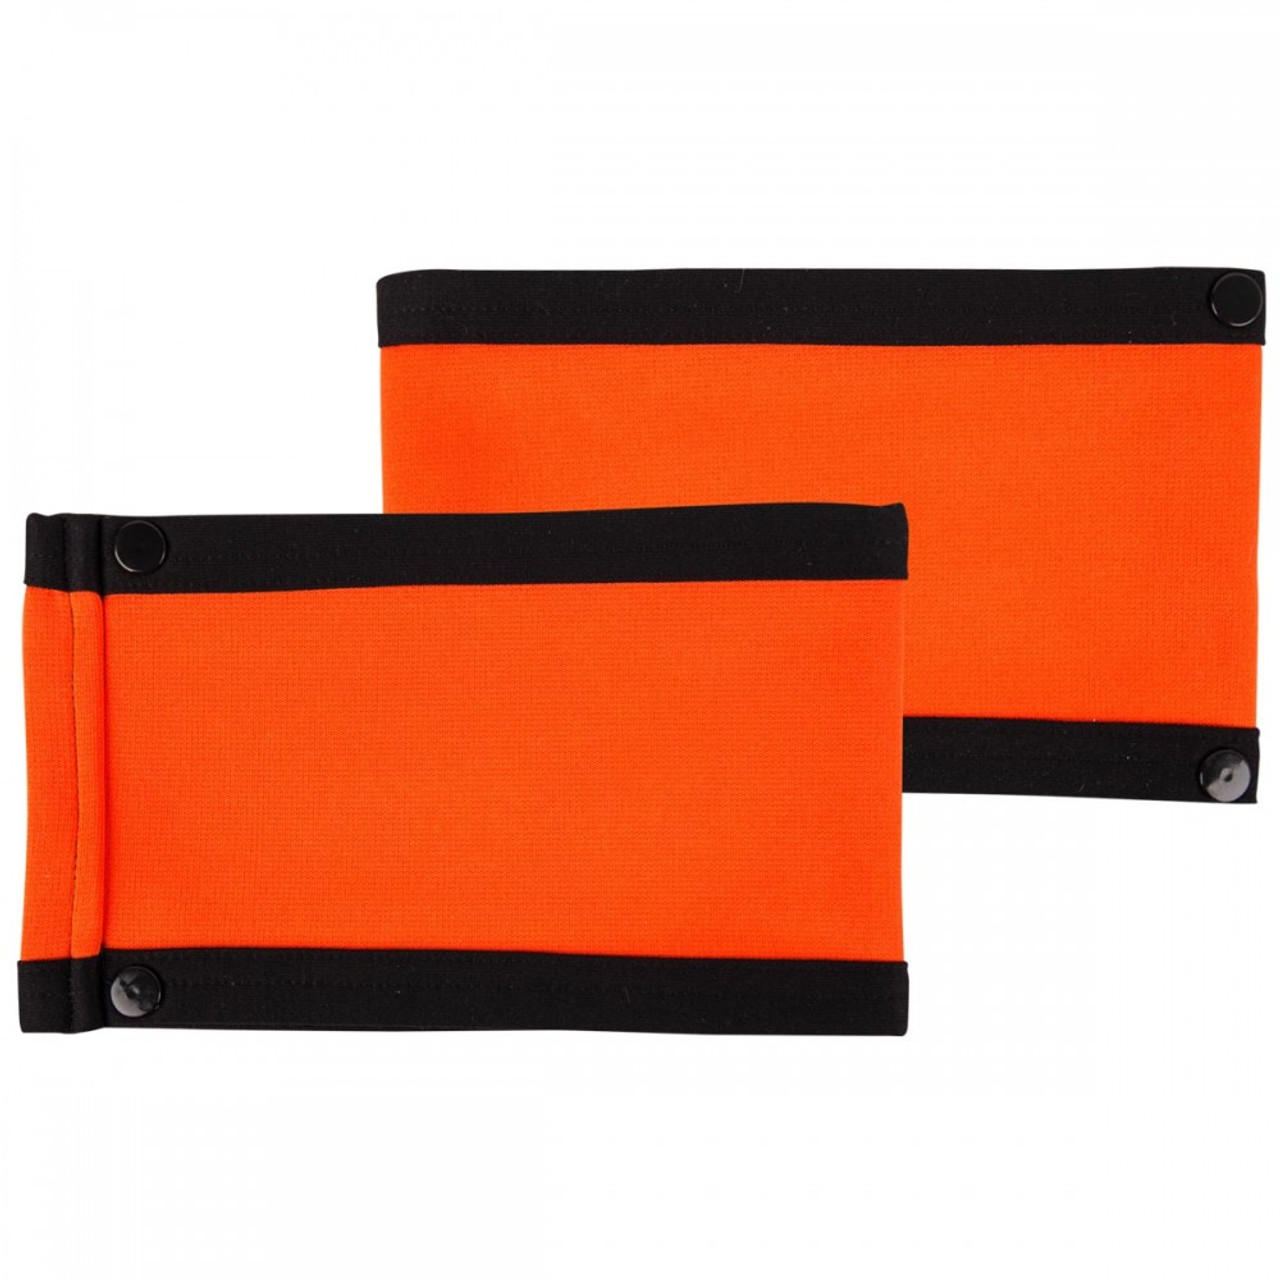 0b2ec34f7fe AK Referee Series Snap On Armbands RJ101 - everysportforless.com